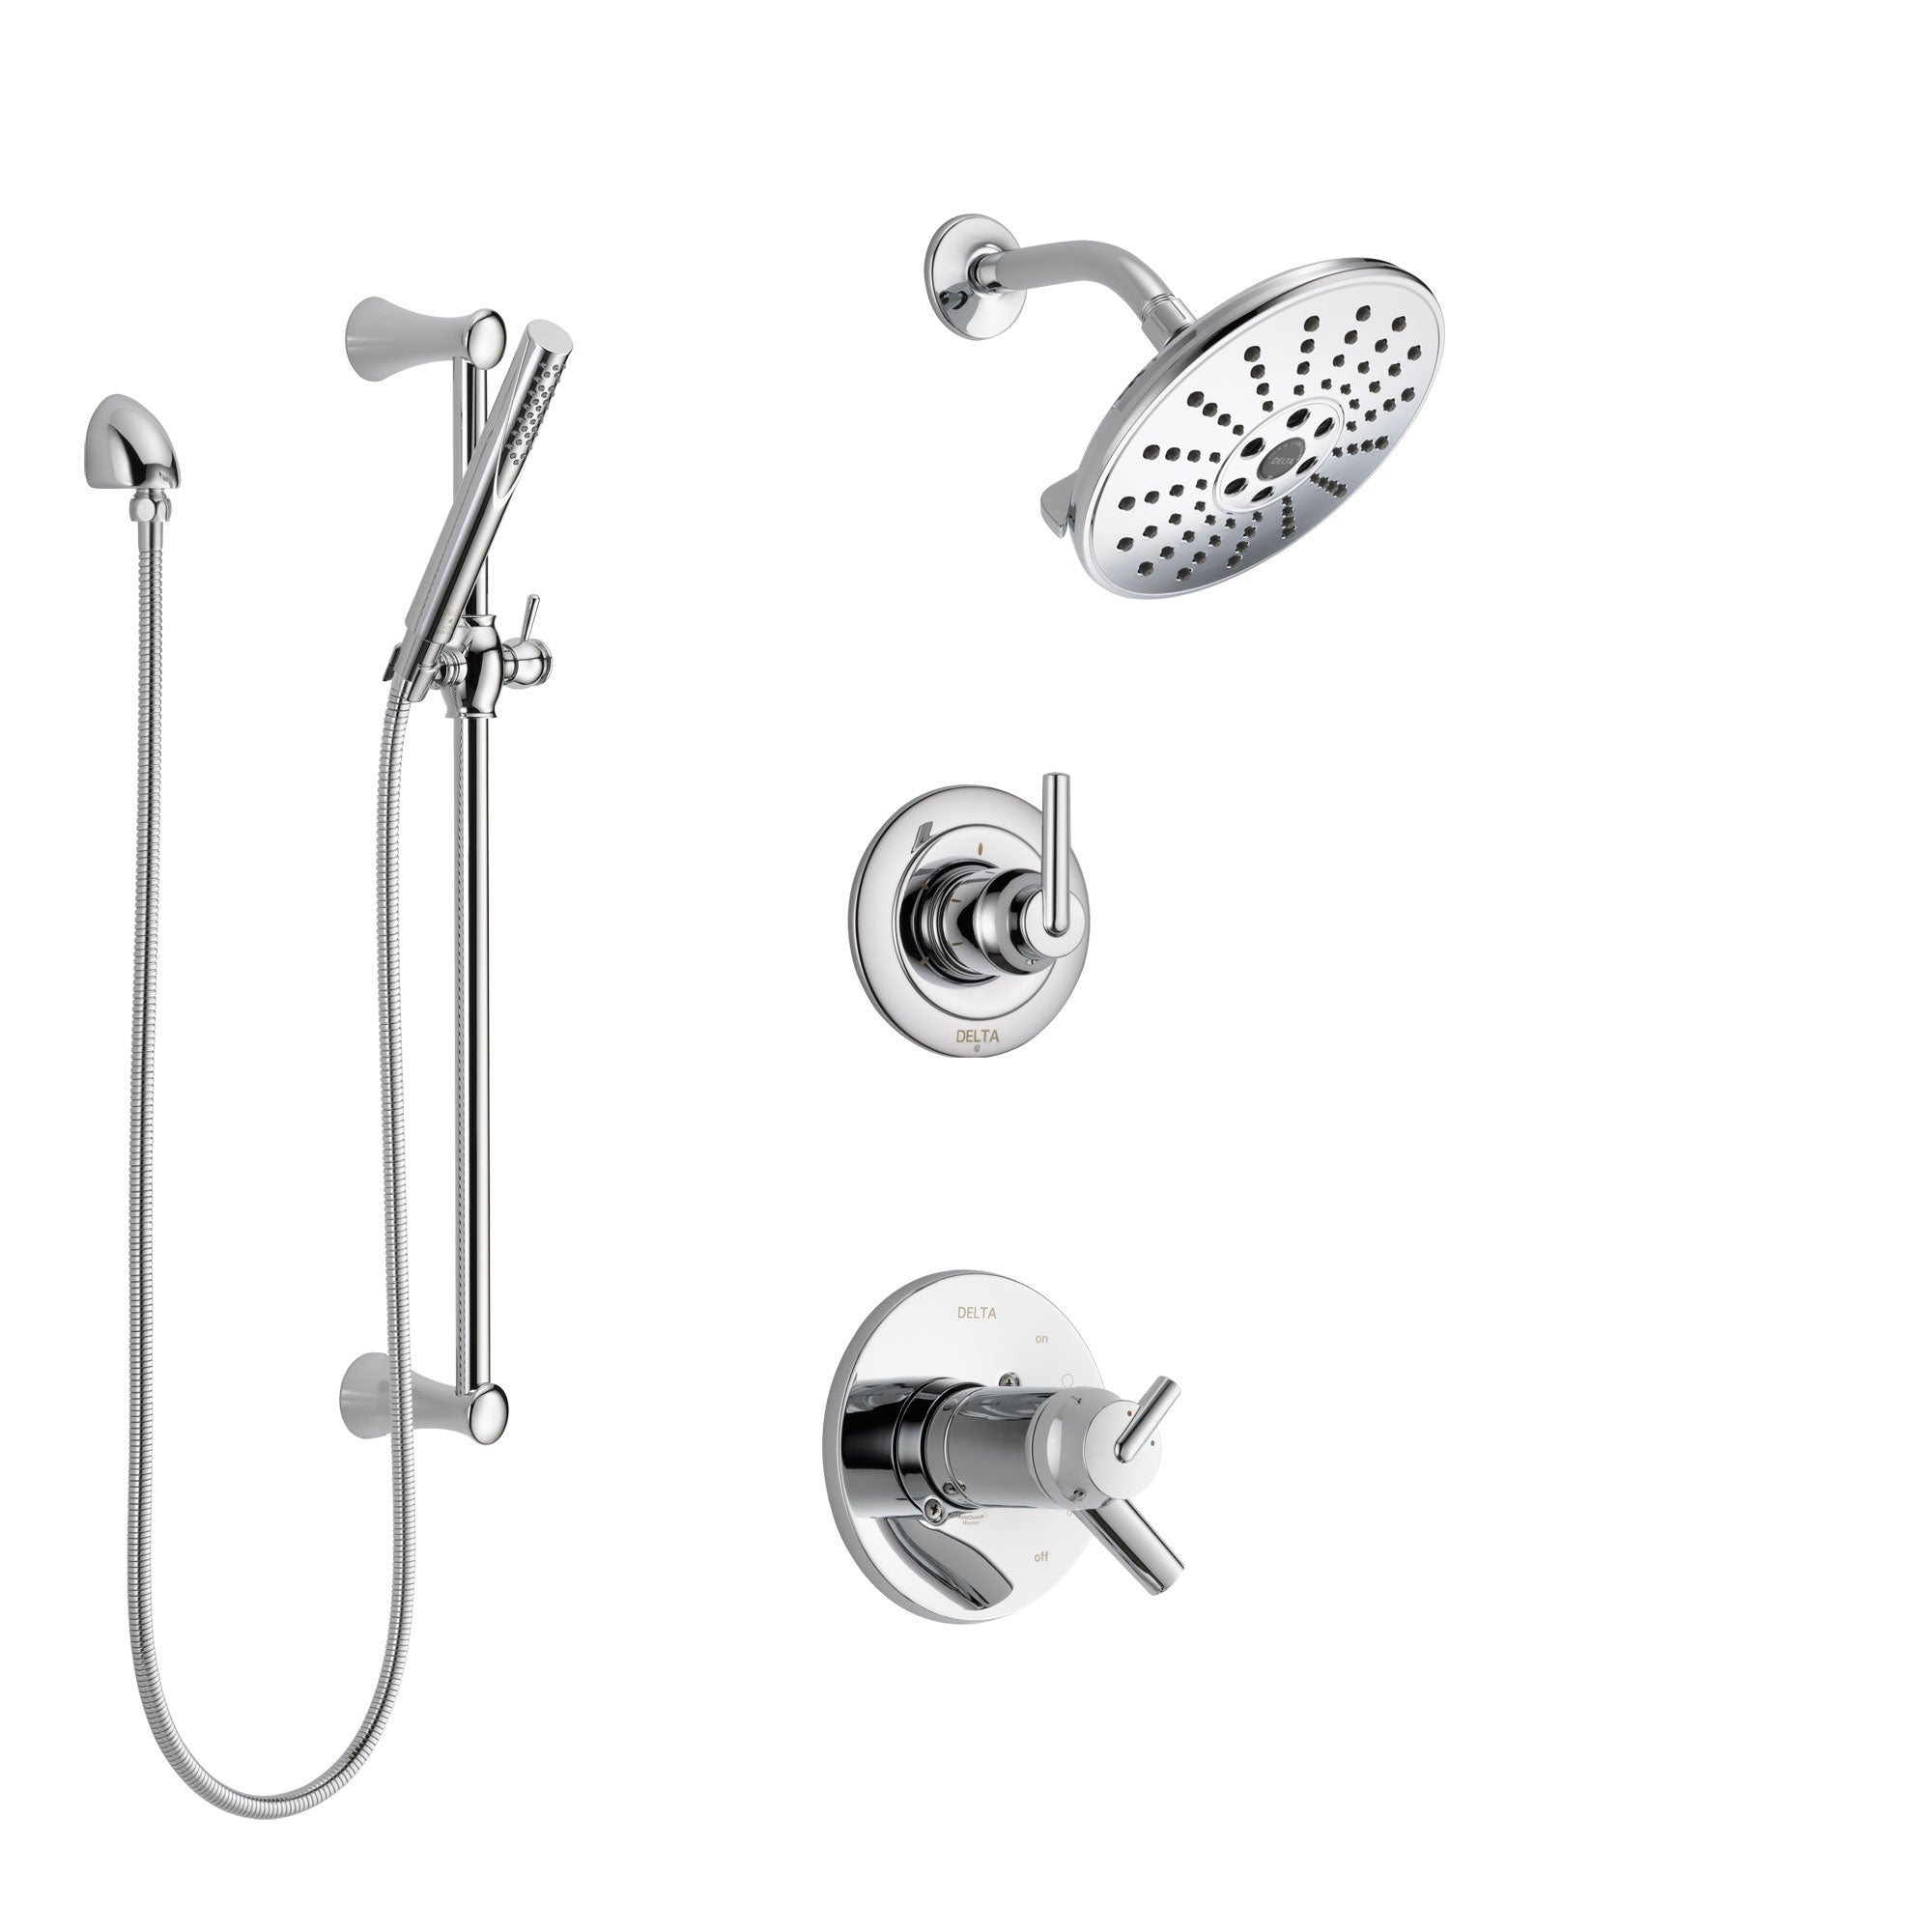 Delta Trinsic Chrome Finish Shower System with Dual Thermostatic Control Handle, Diverter, Showerhead, and Hand Shower with Slidebar SS17T25925